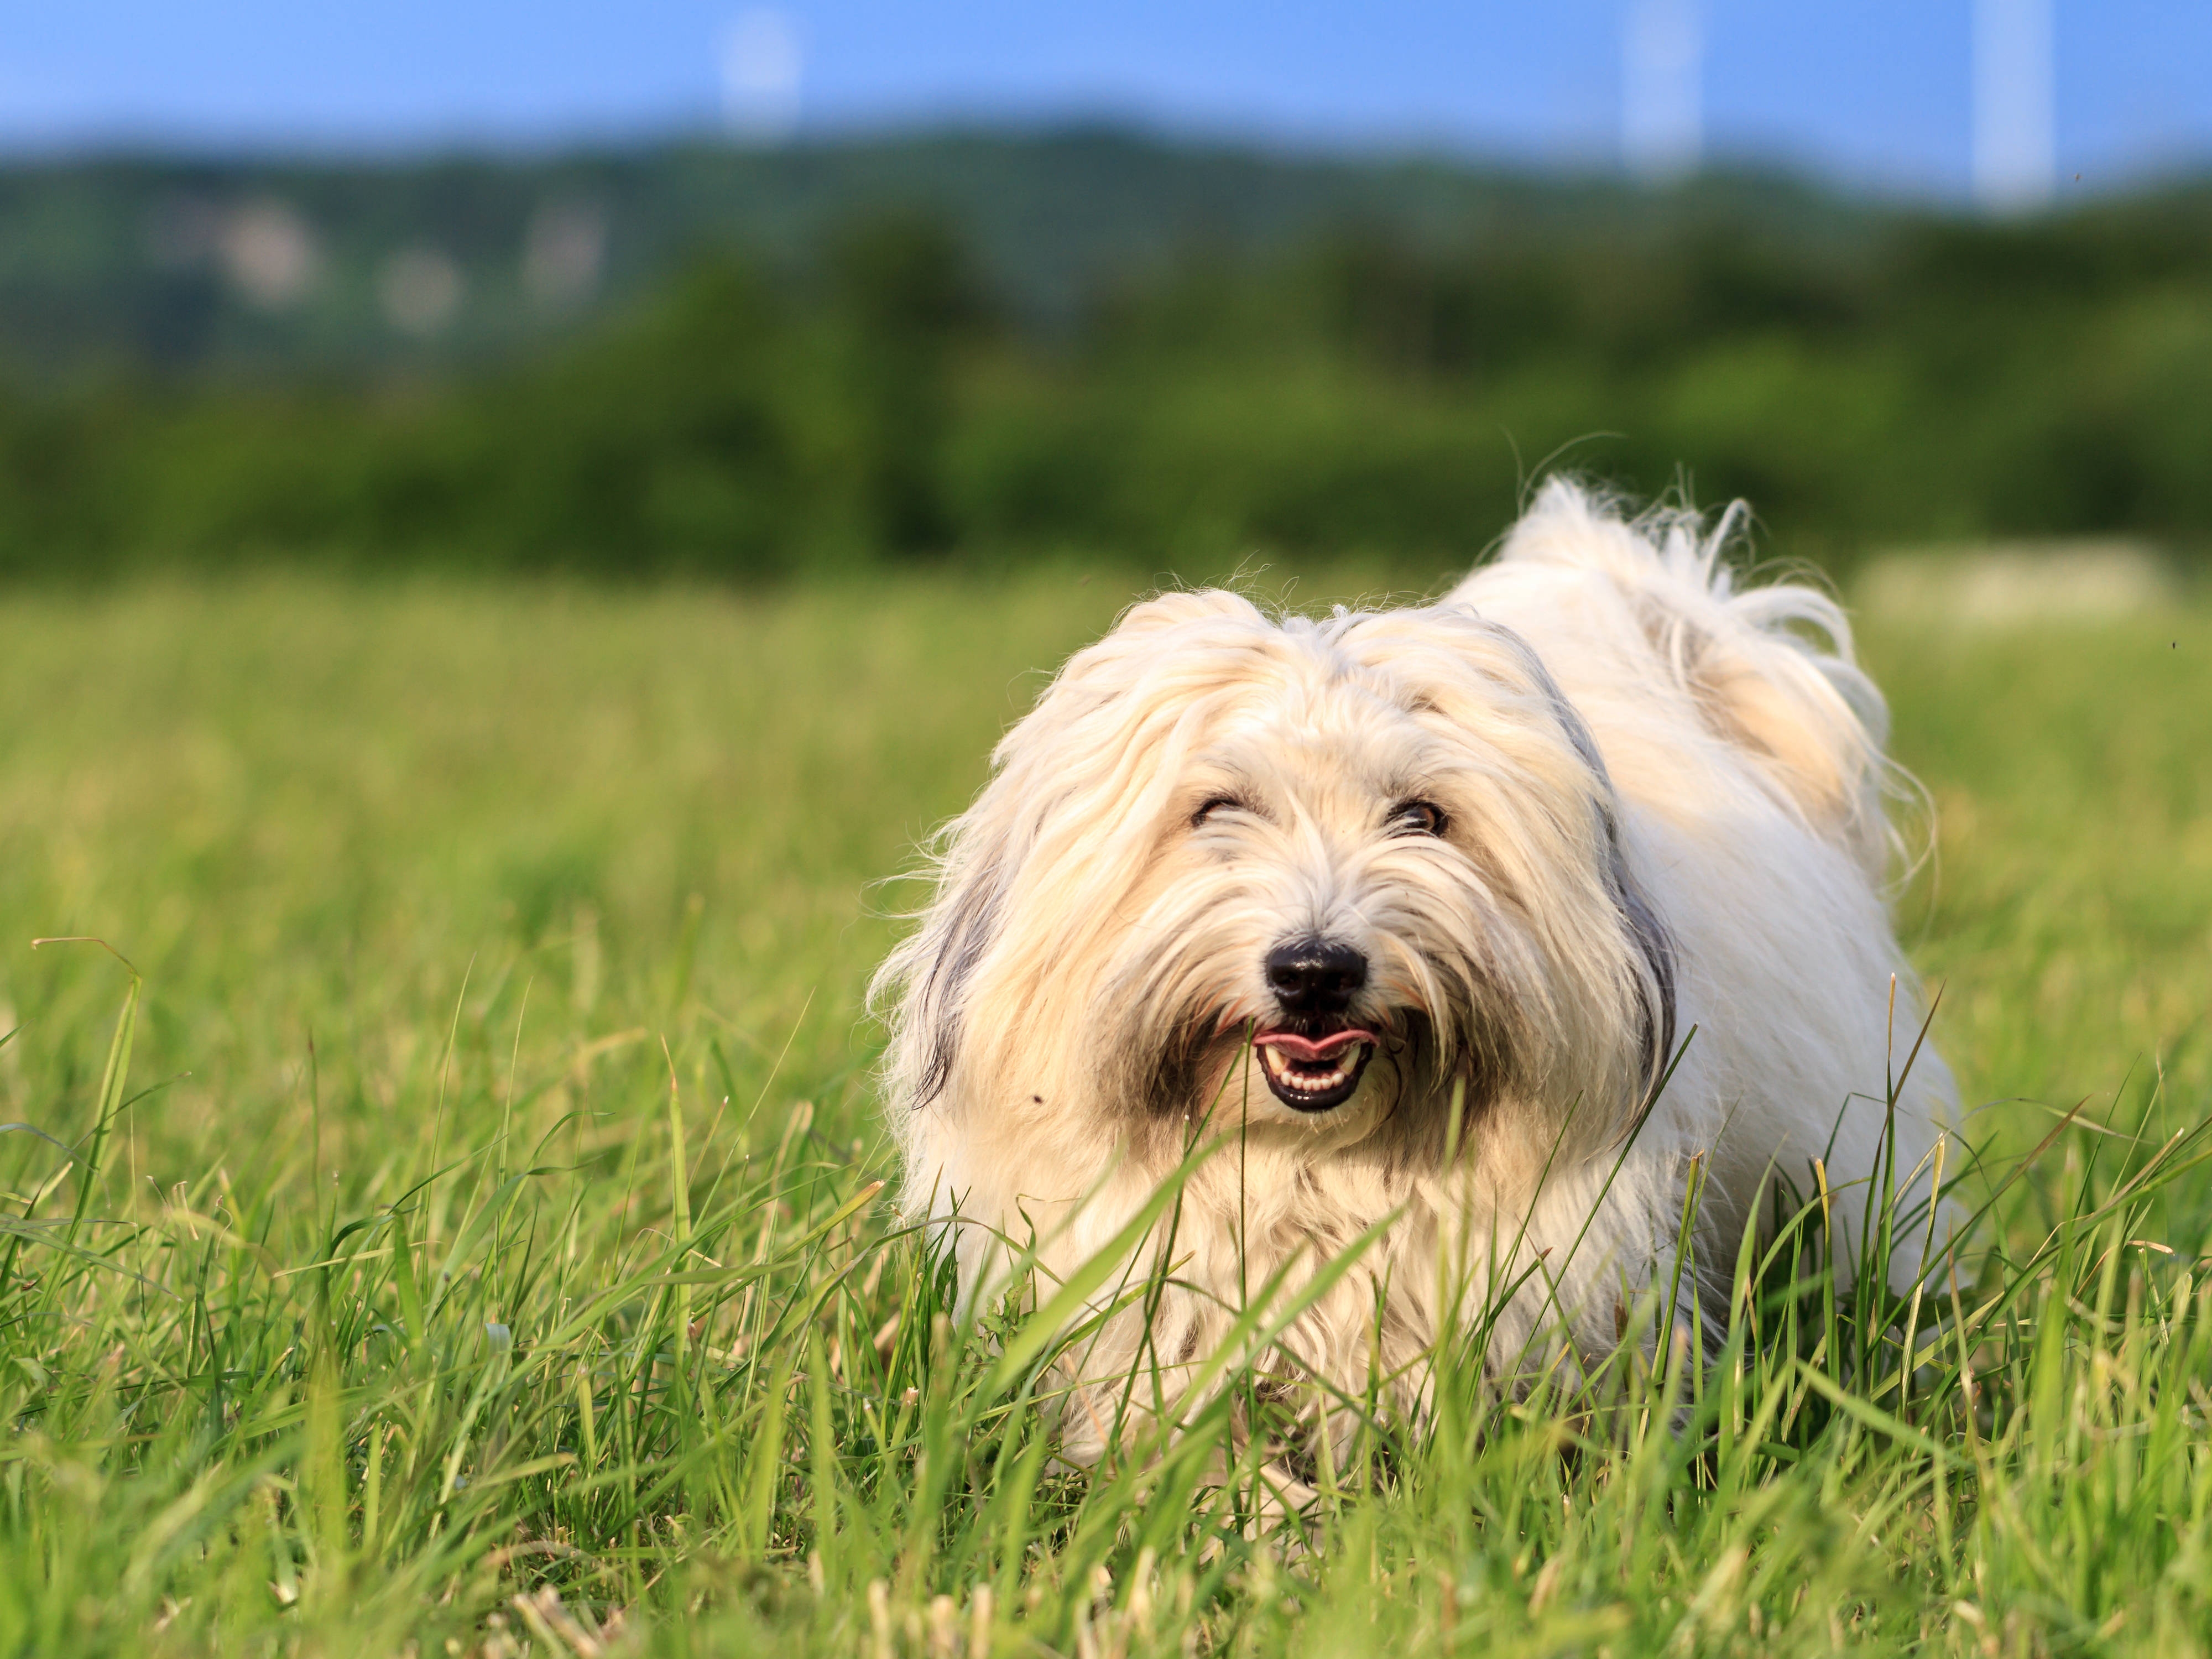 White dog with long hair, running and playing in a meadow. Adult Coton de Tulear Breed